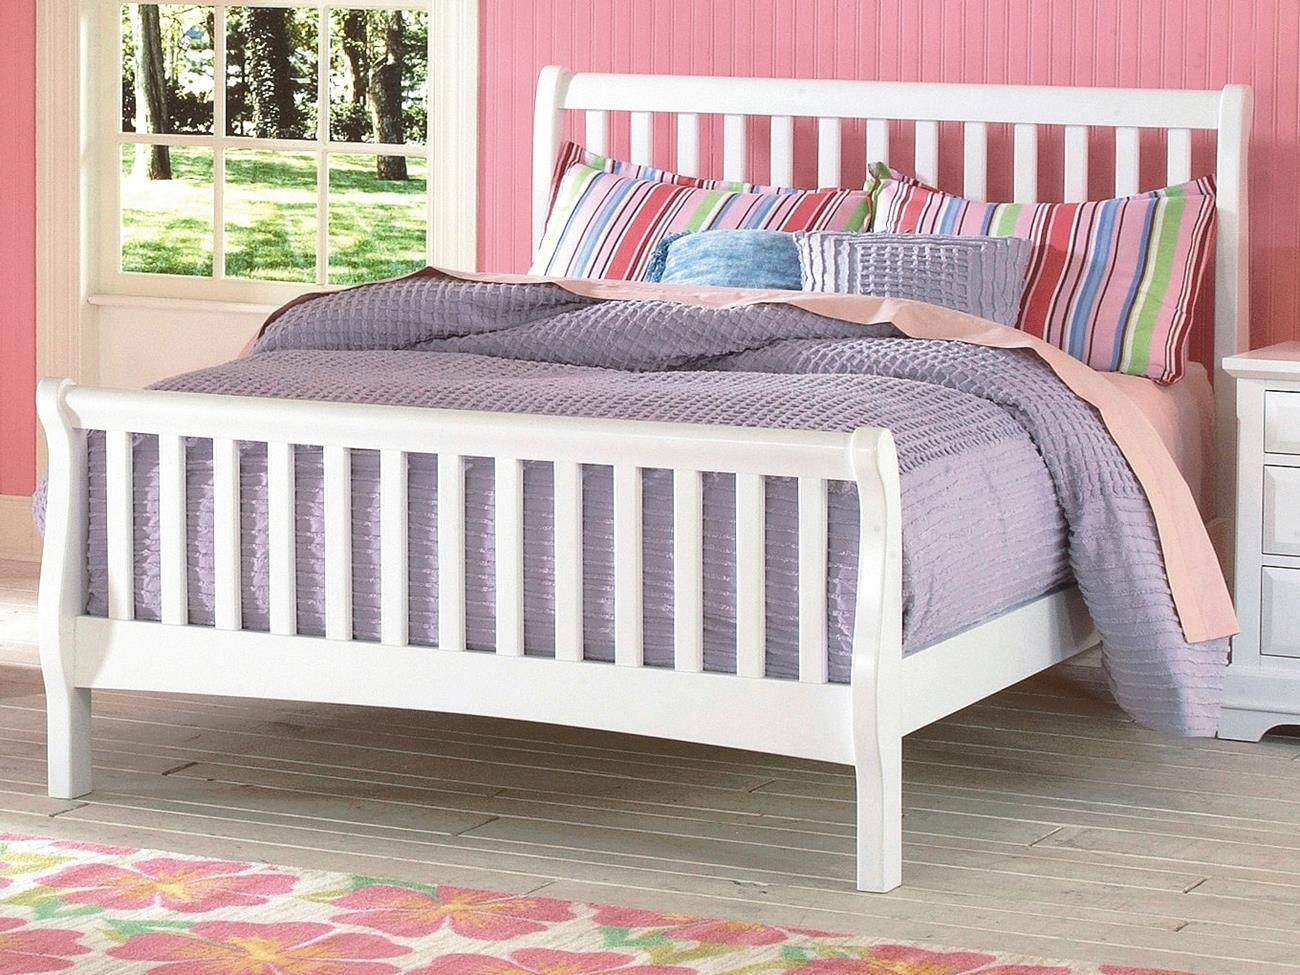 Beatrice Youth Full Sleigh Bed in White Finish by